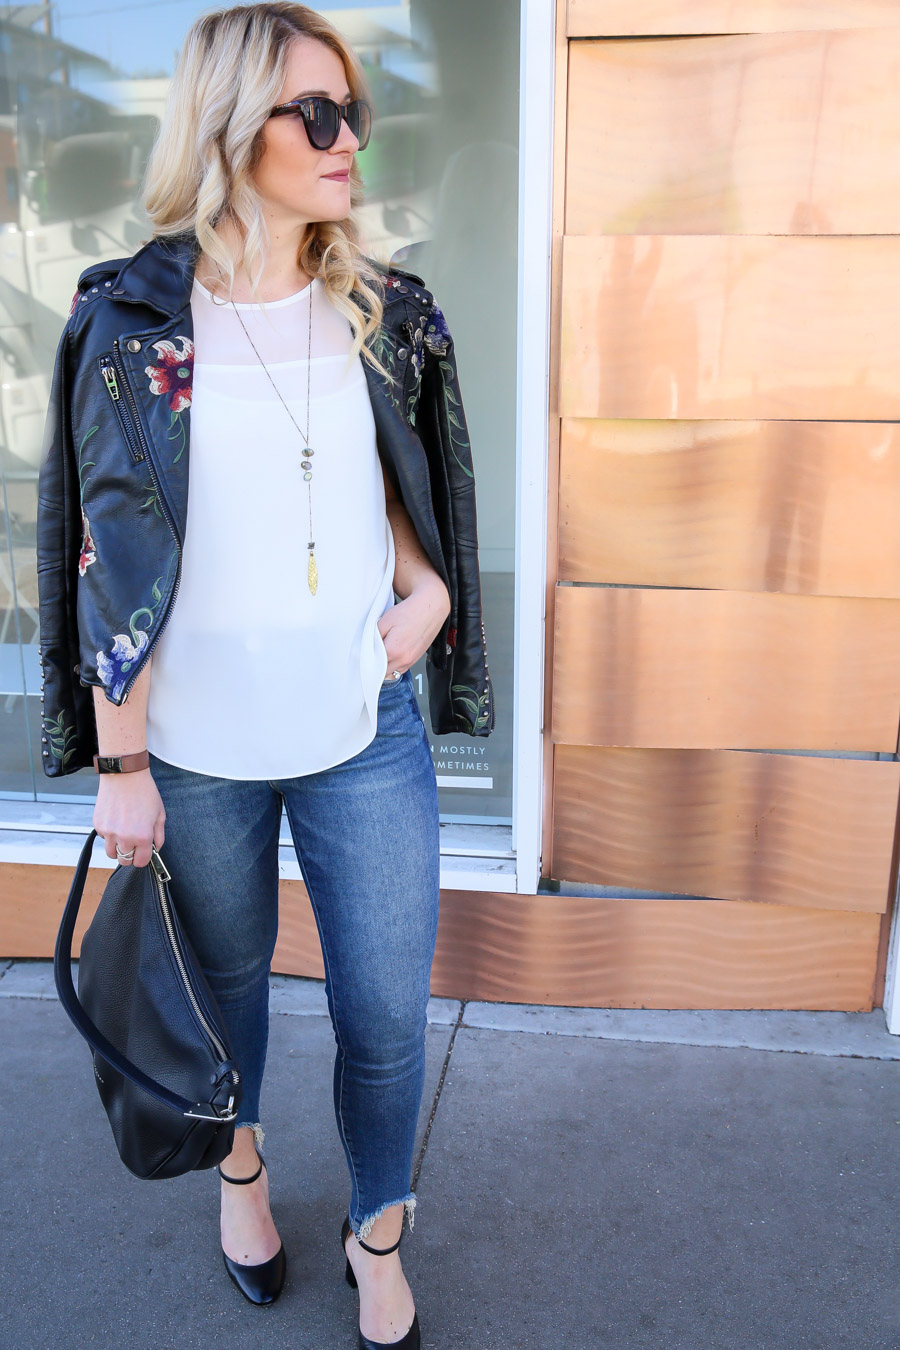 Last Minute Date Night Embroidered Leather Jacket Outfits